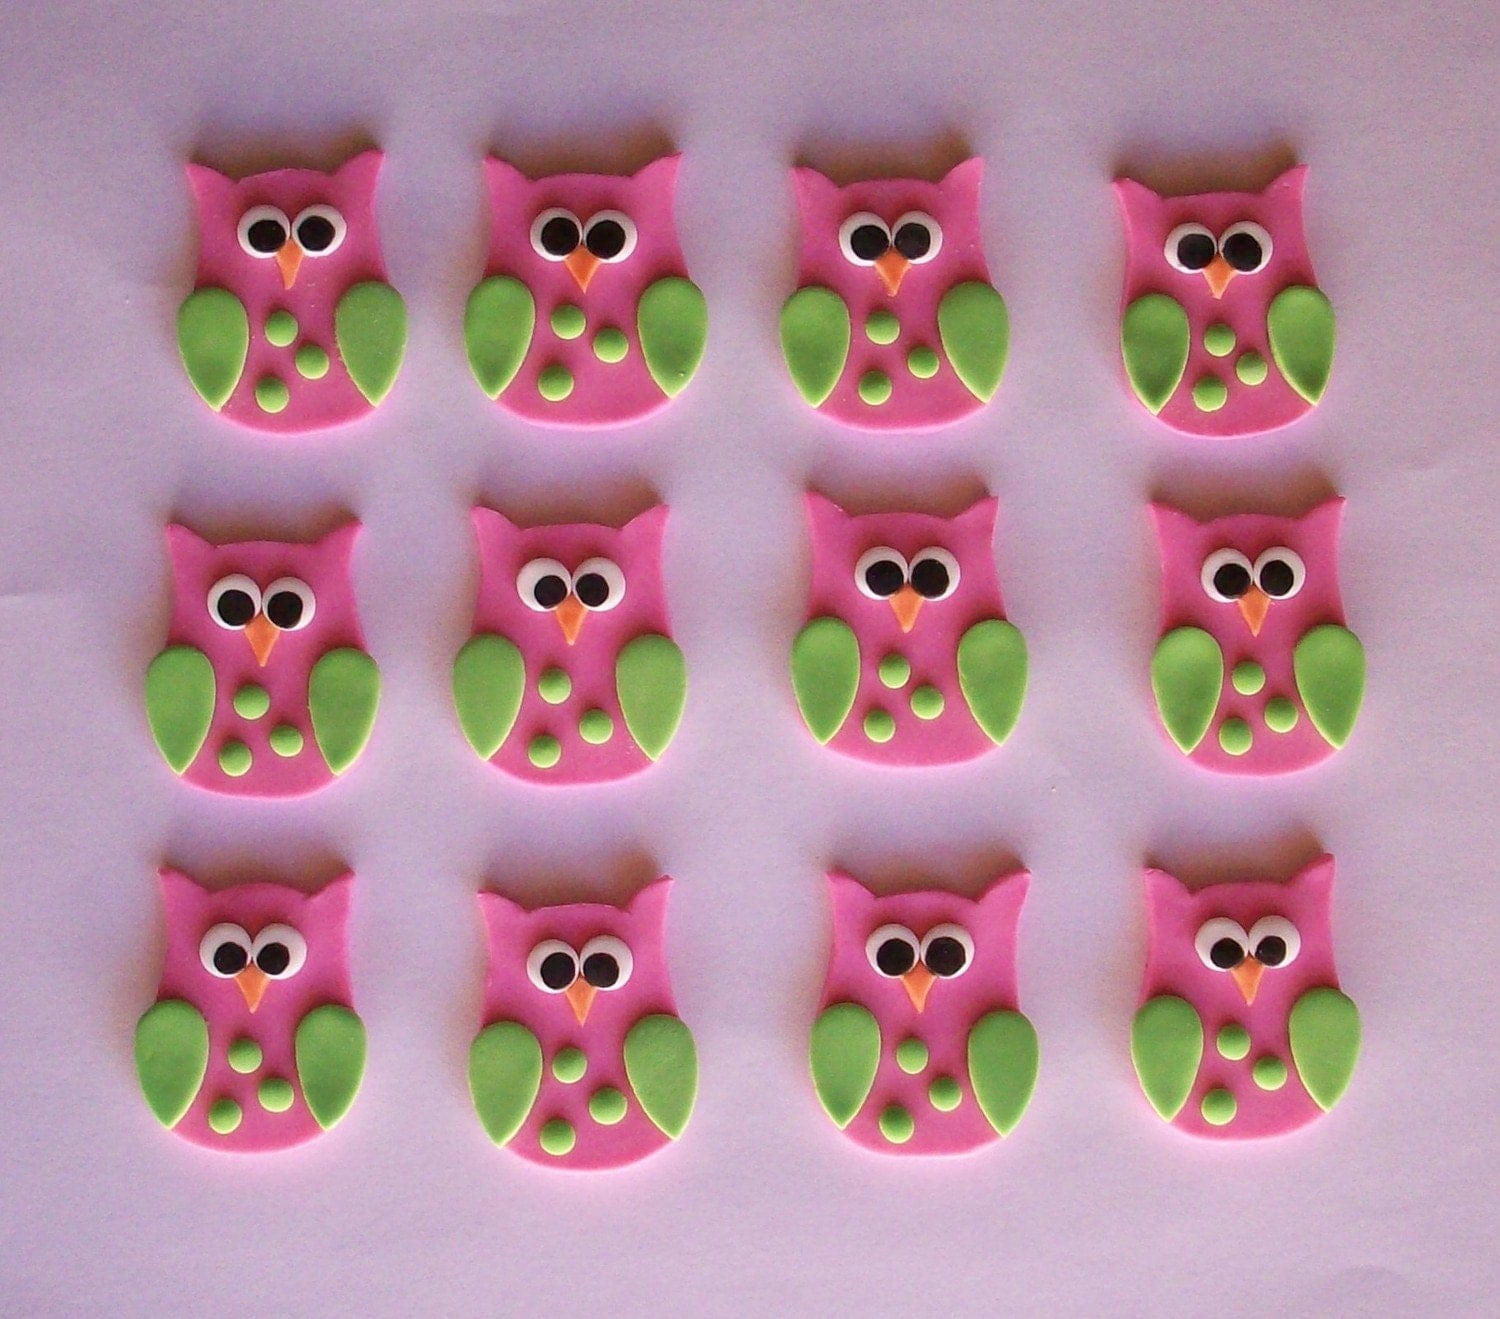 Cake Toppers In Fondant : Fondant Owls Cake/Cupcake Toppers One Dozen by SasssyPants